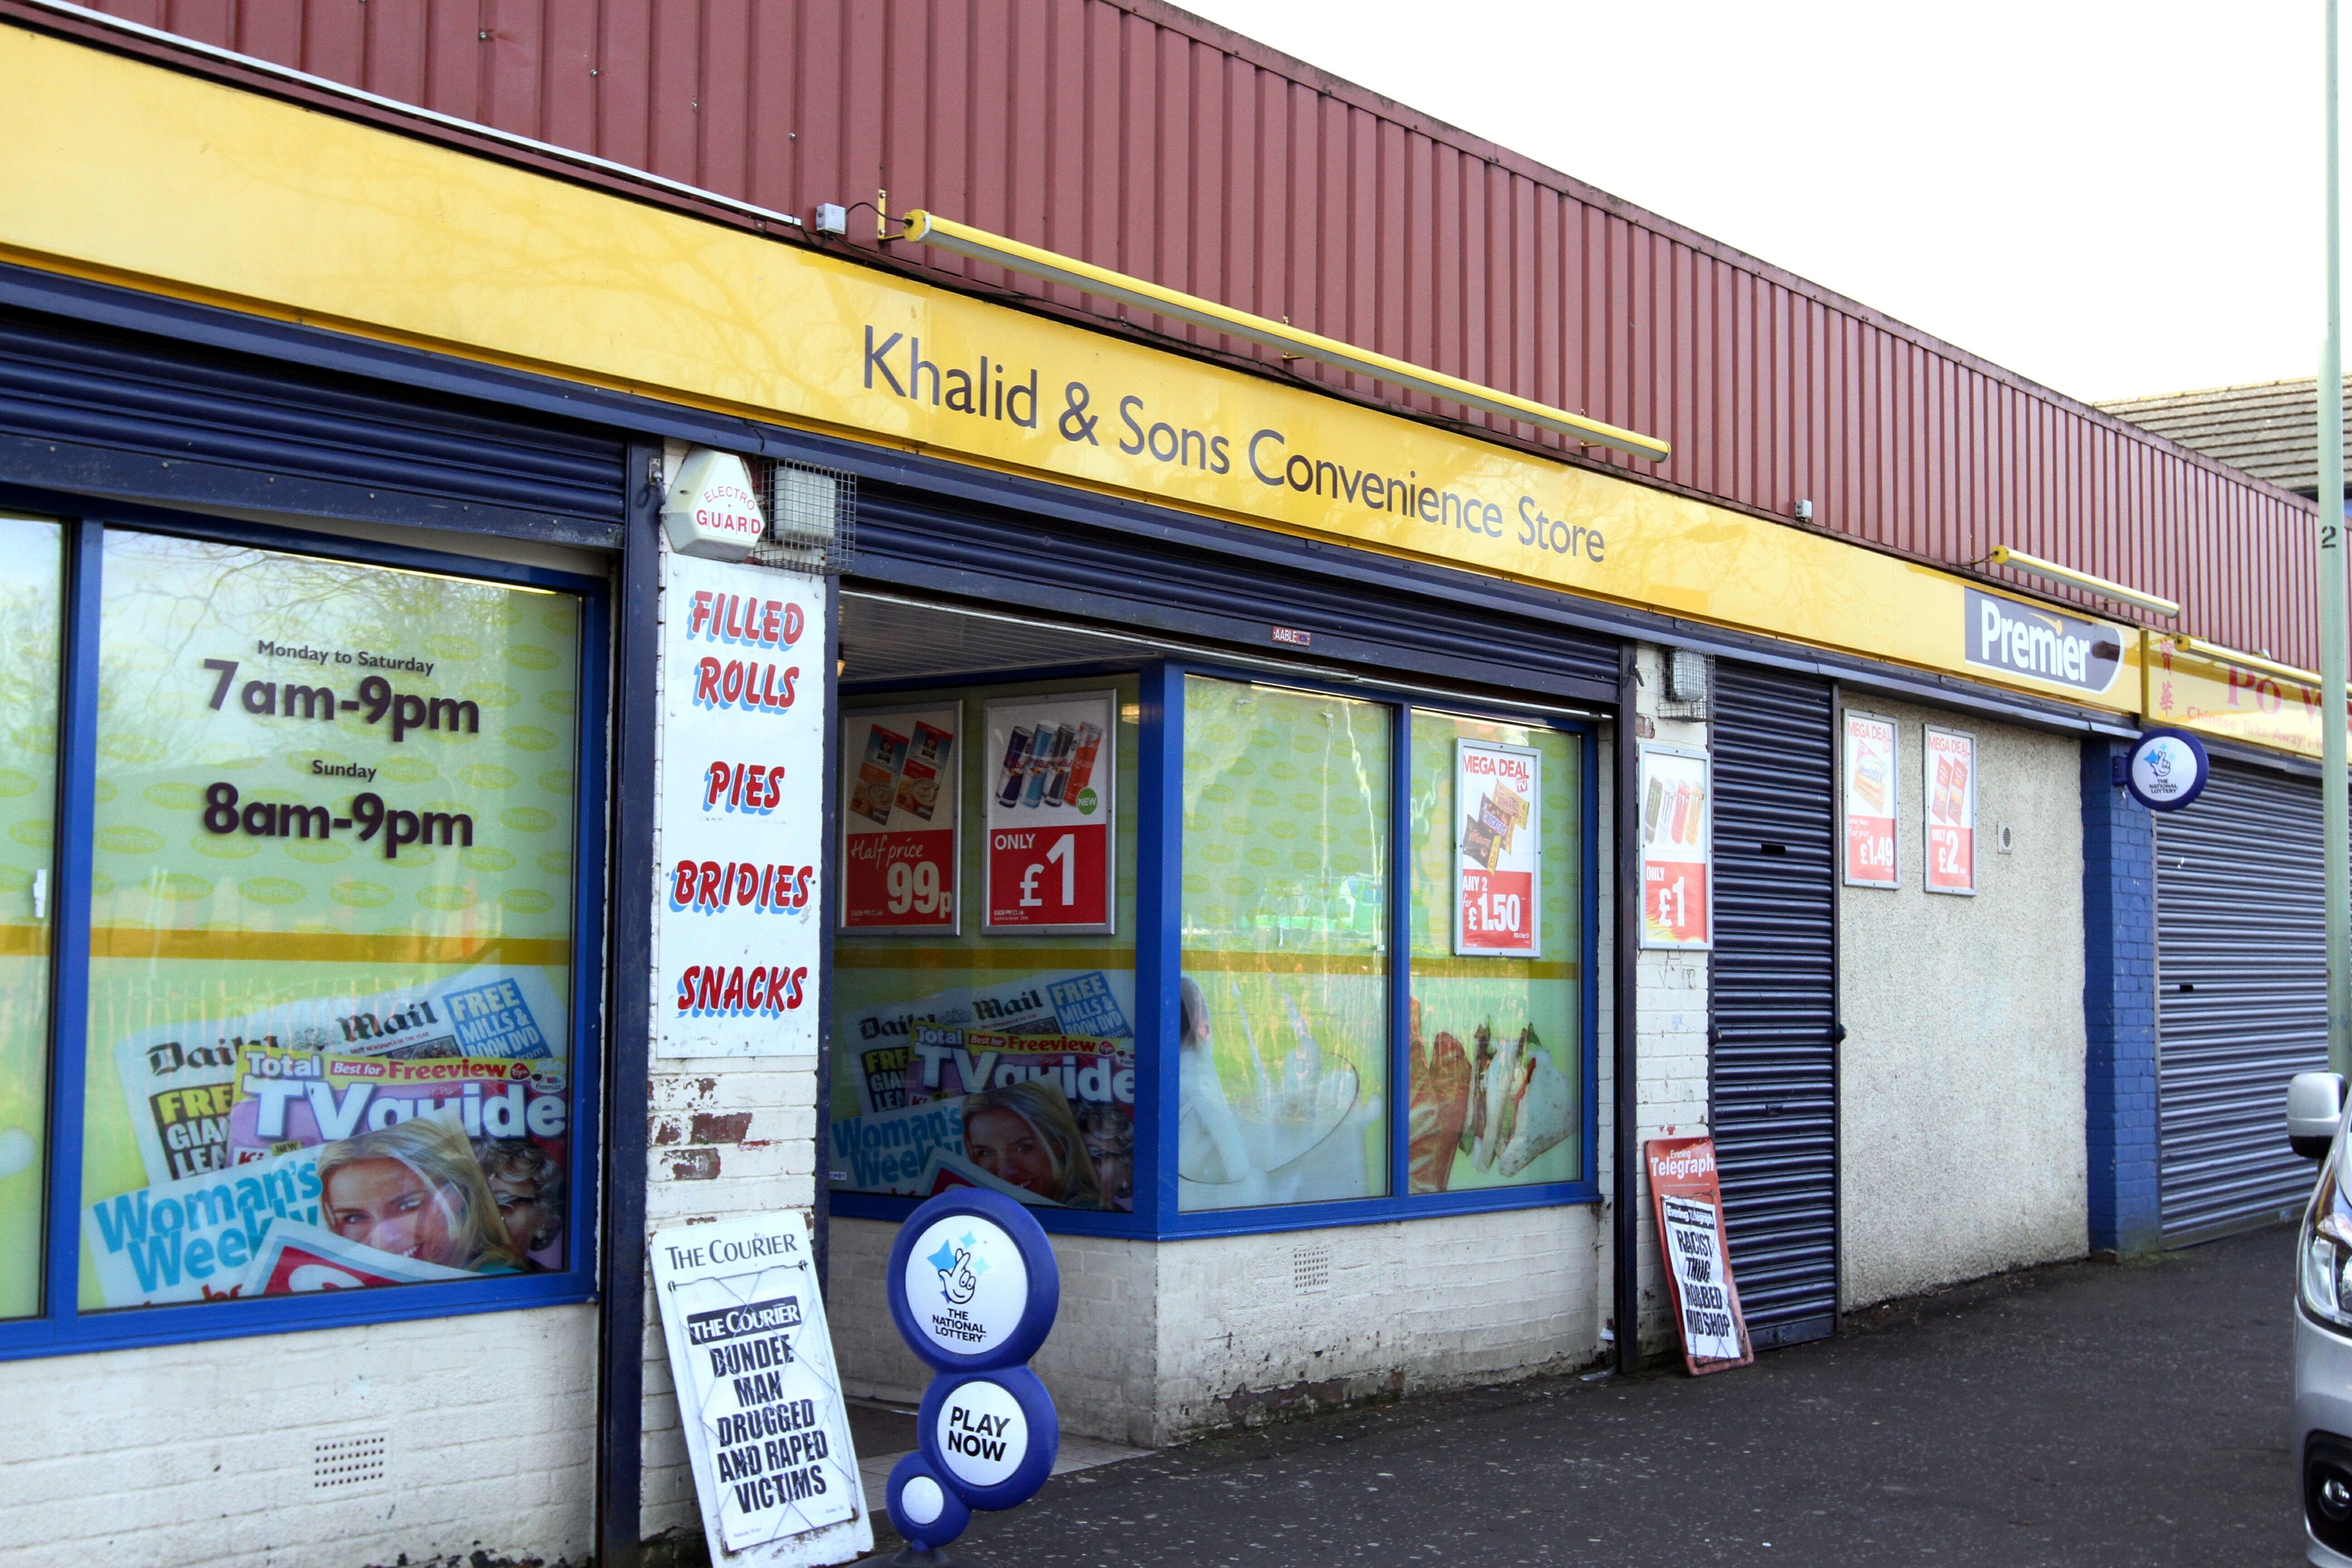 The Khalid Convenience Store in Mid Craigie